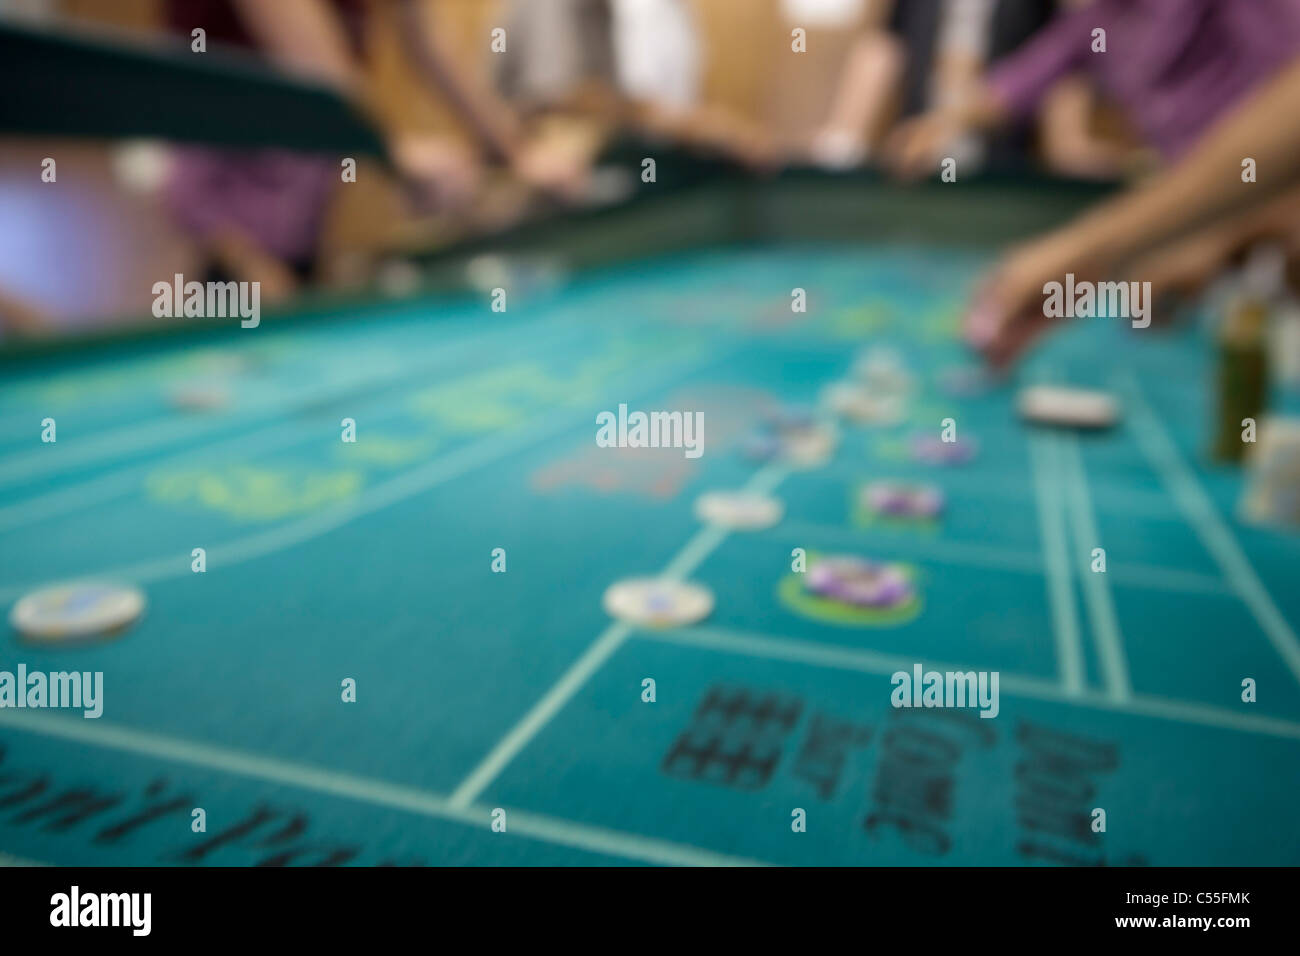 Out of focus roulette table Stock Photo